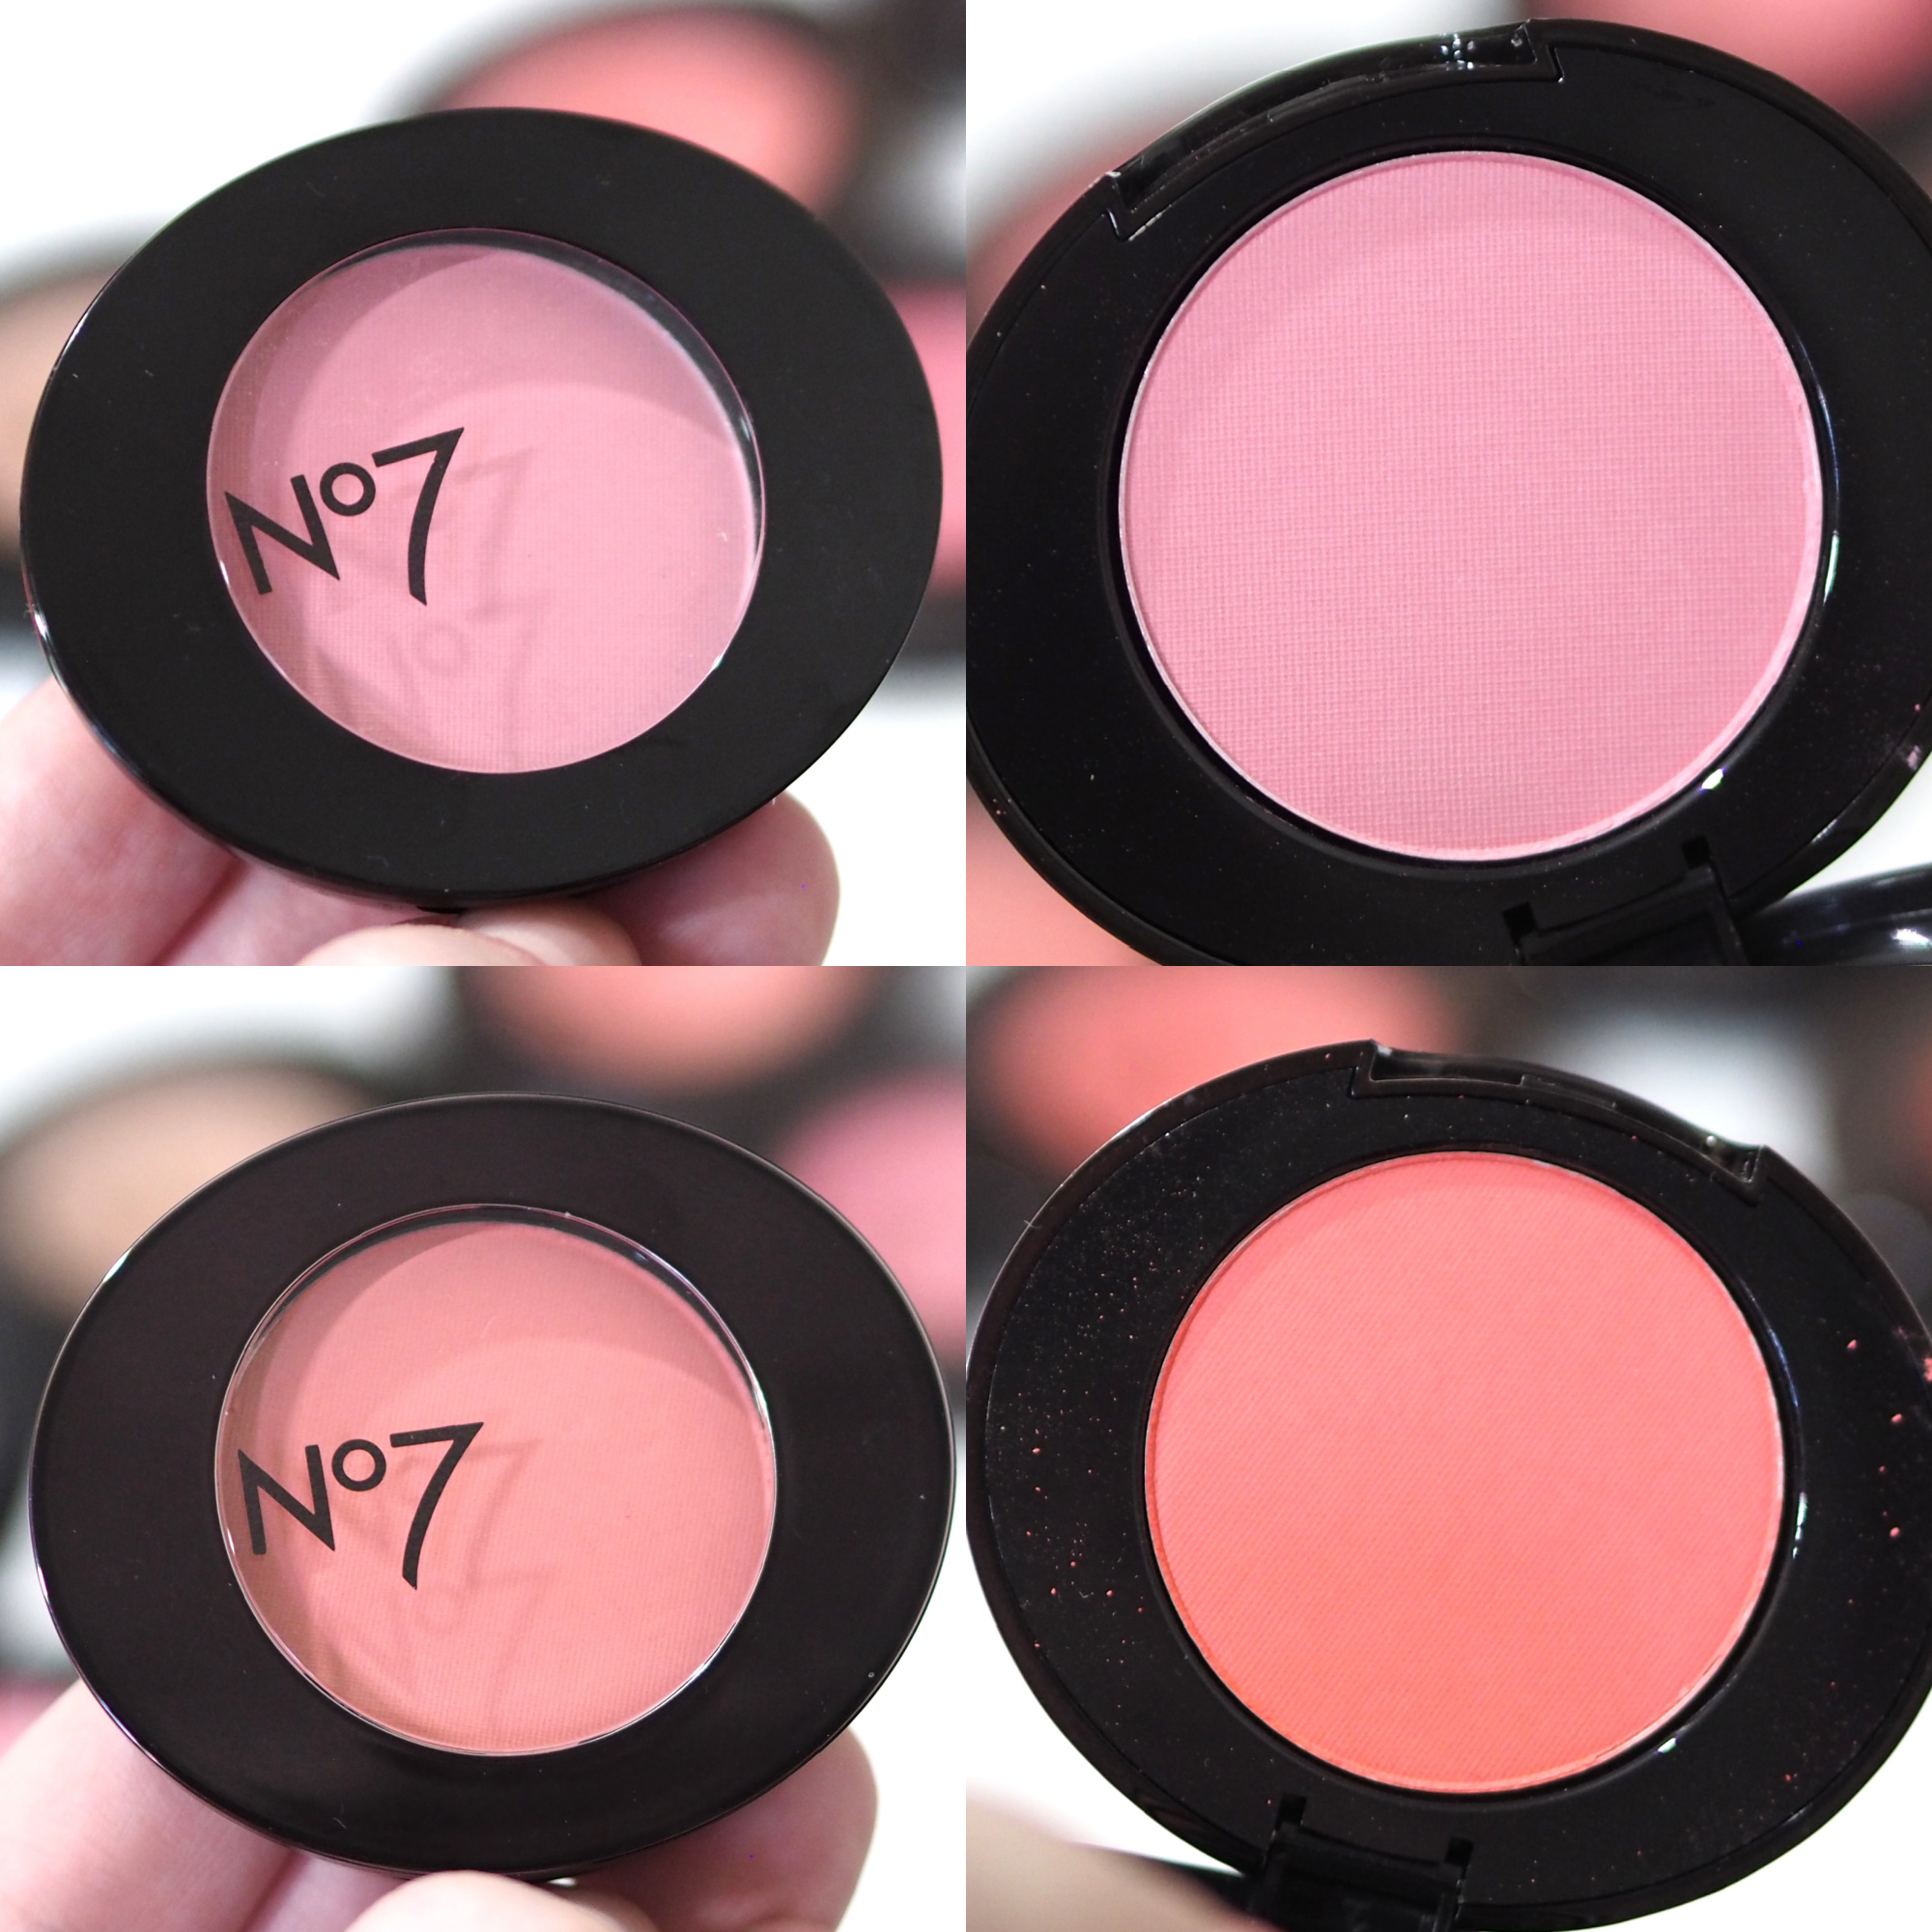 No7 Match Made Powder Blusher Collection Review Swatches